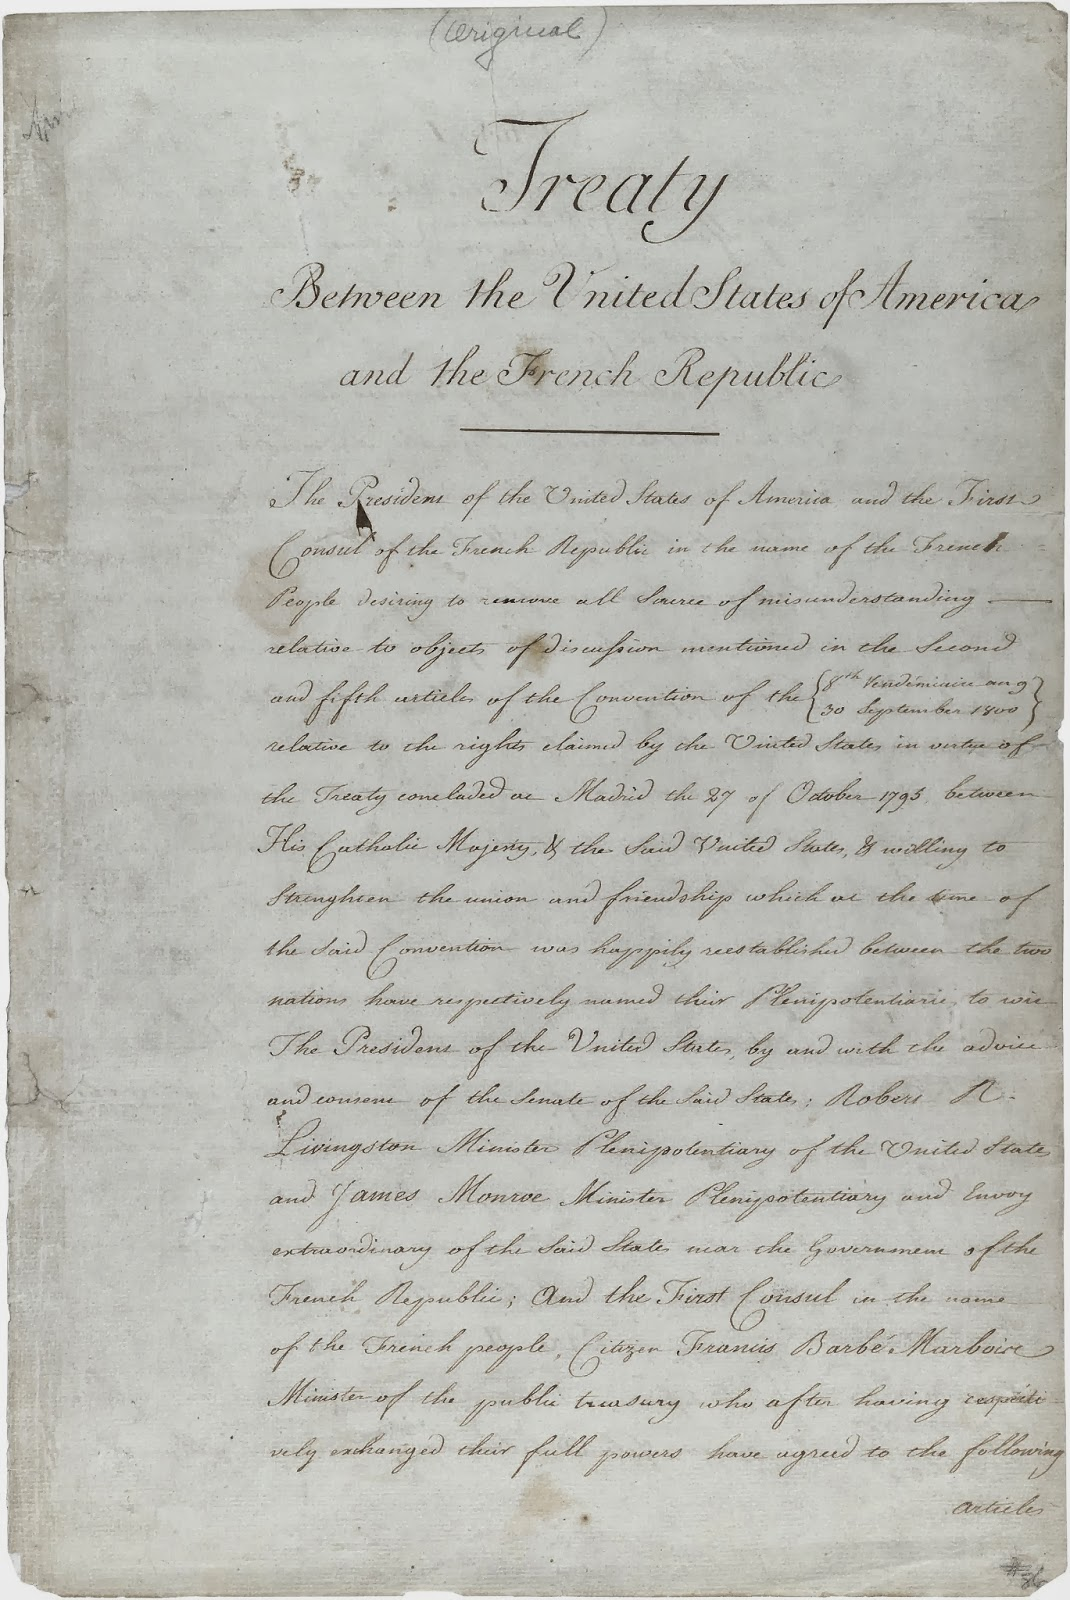 Today in History: OCTOBER 20 = Louisiana Purchase Ratified